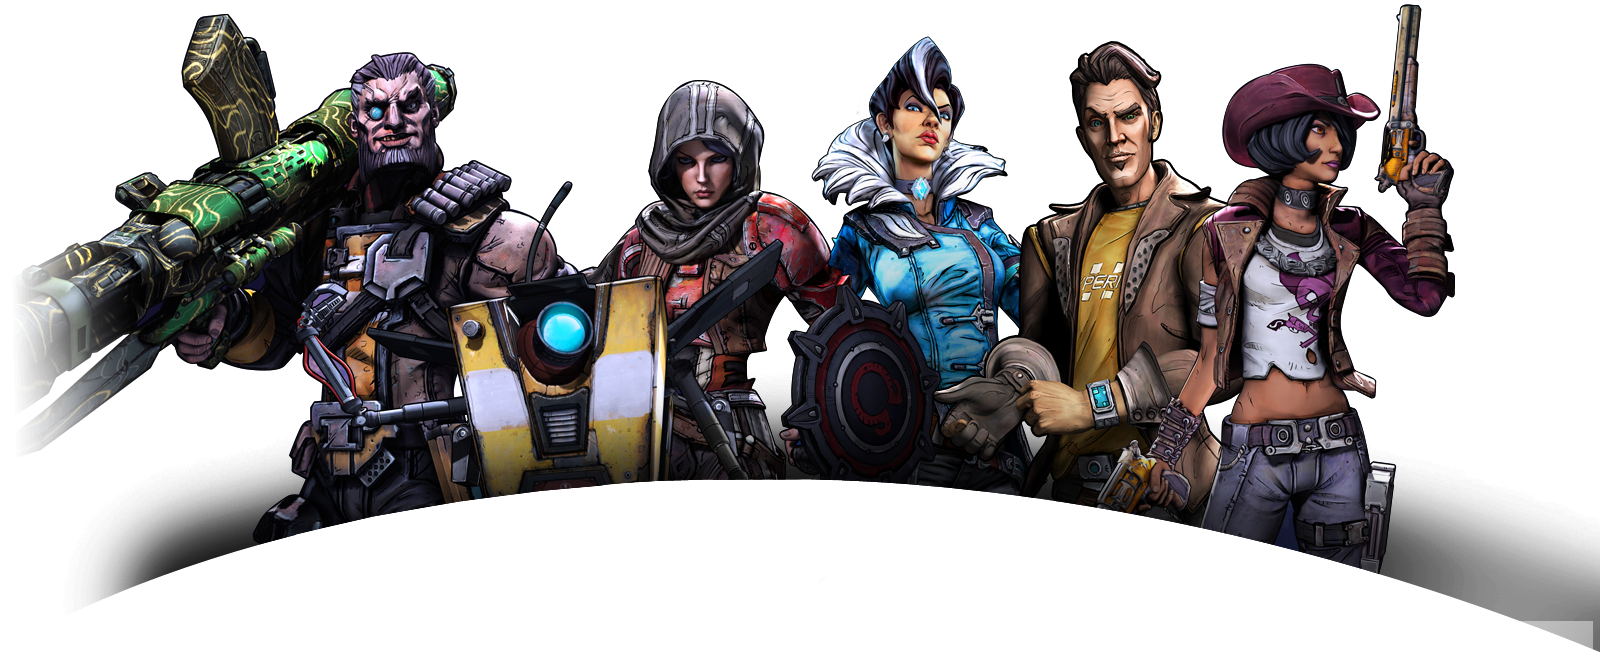 Bl2 naked characters exploited photo